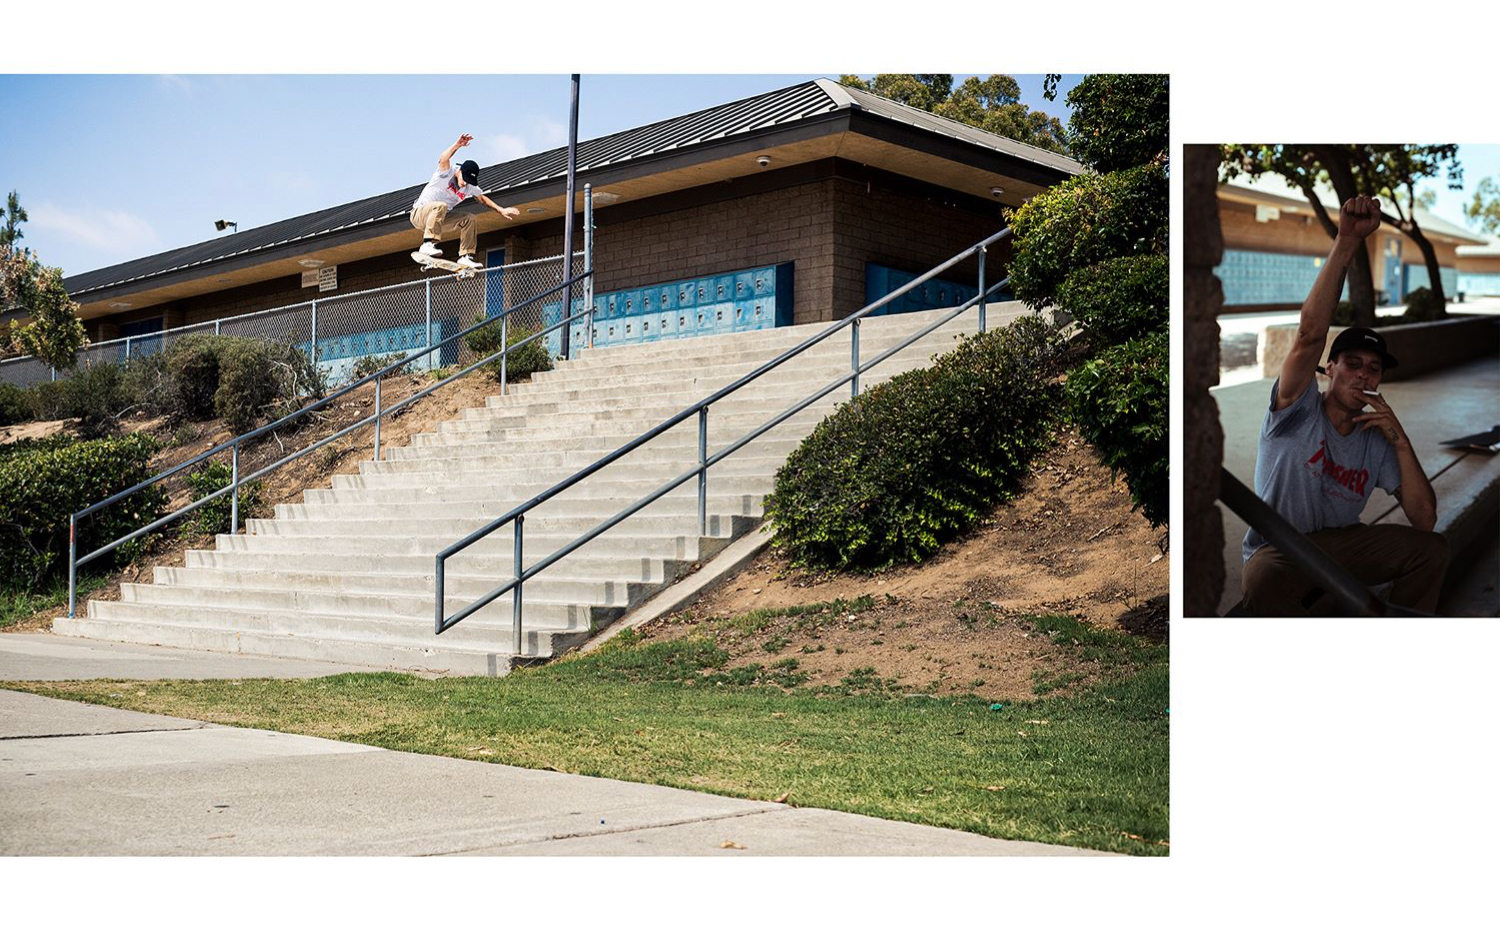 Nick Merlino - Riding the Duffel Graphic Switch Ollie El Toro - Photo: Alex Papke